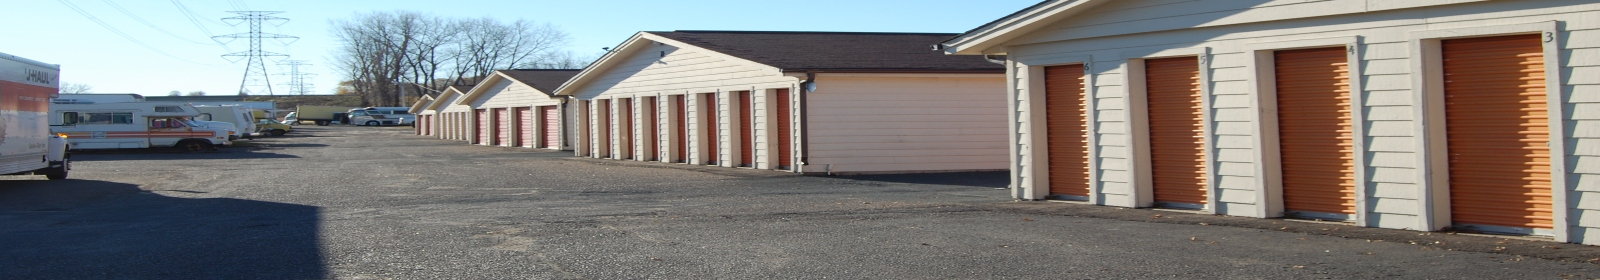 Contact Coon Rapids Storage